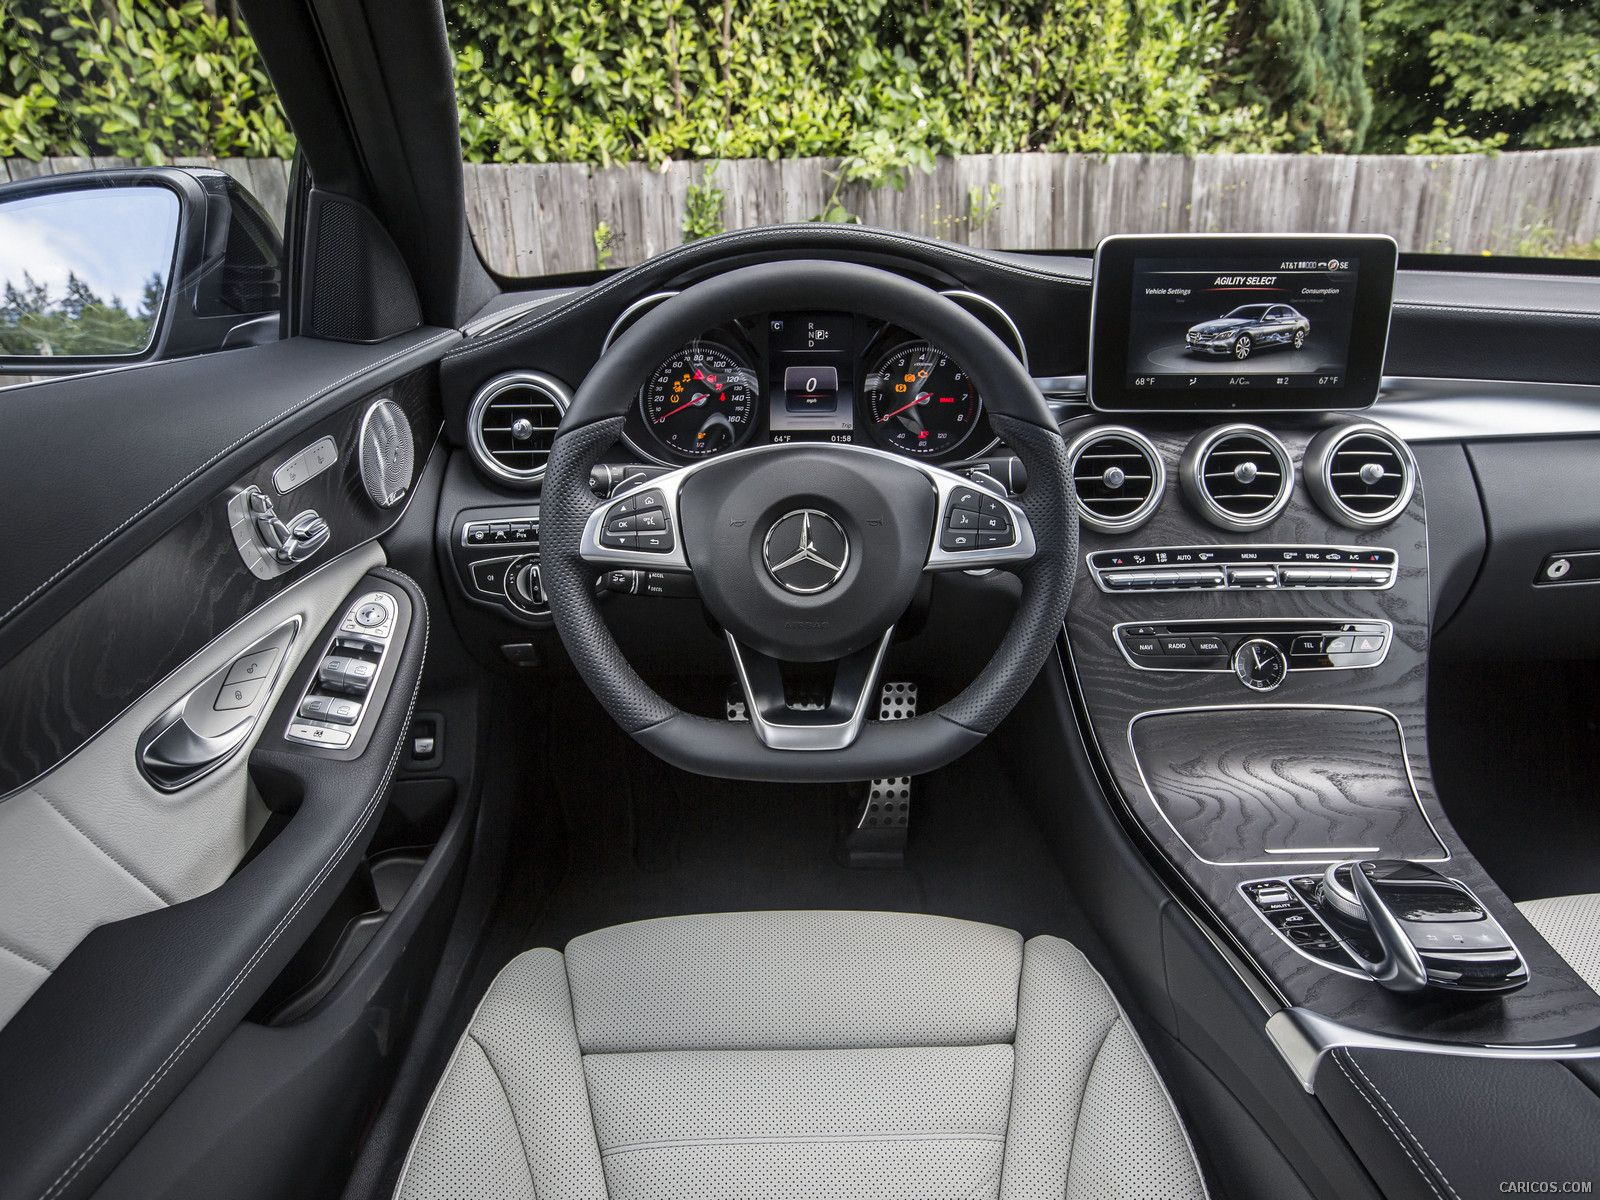 Pin By Nika On Pencil Drawings In 2020 Benz C Mercedes C300